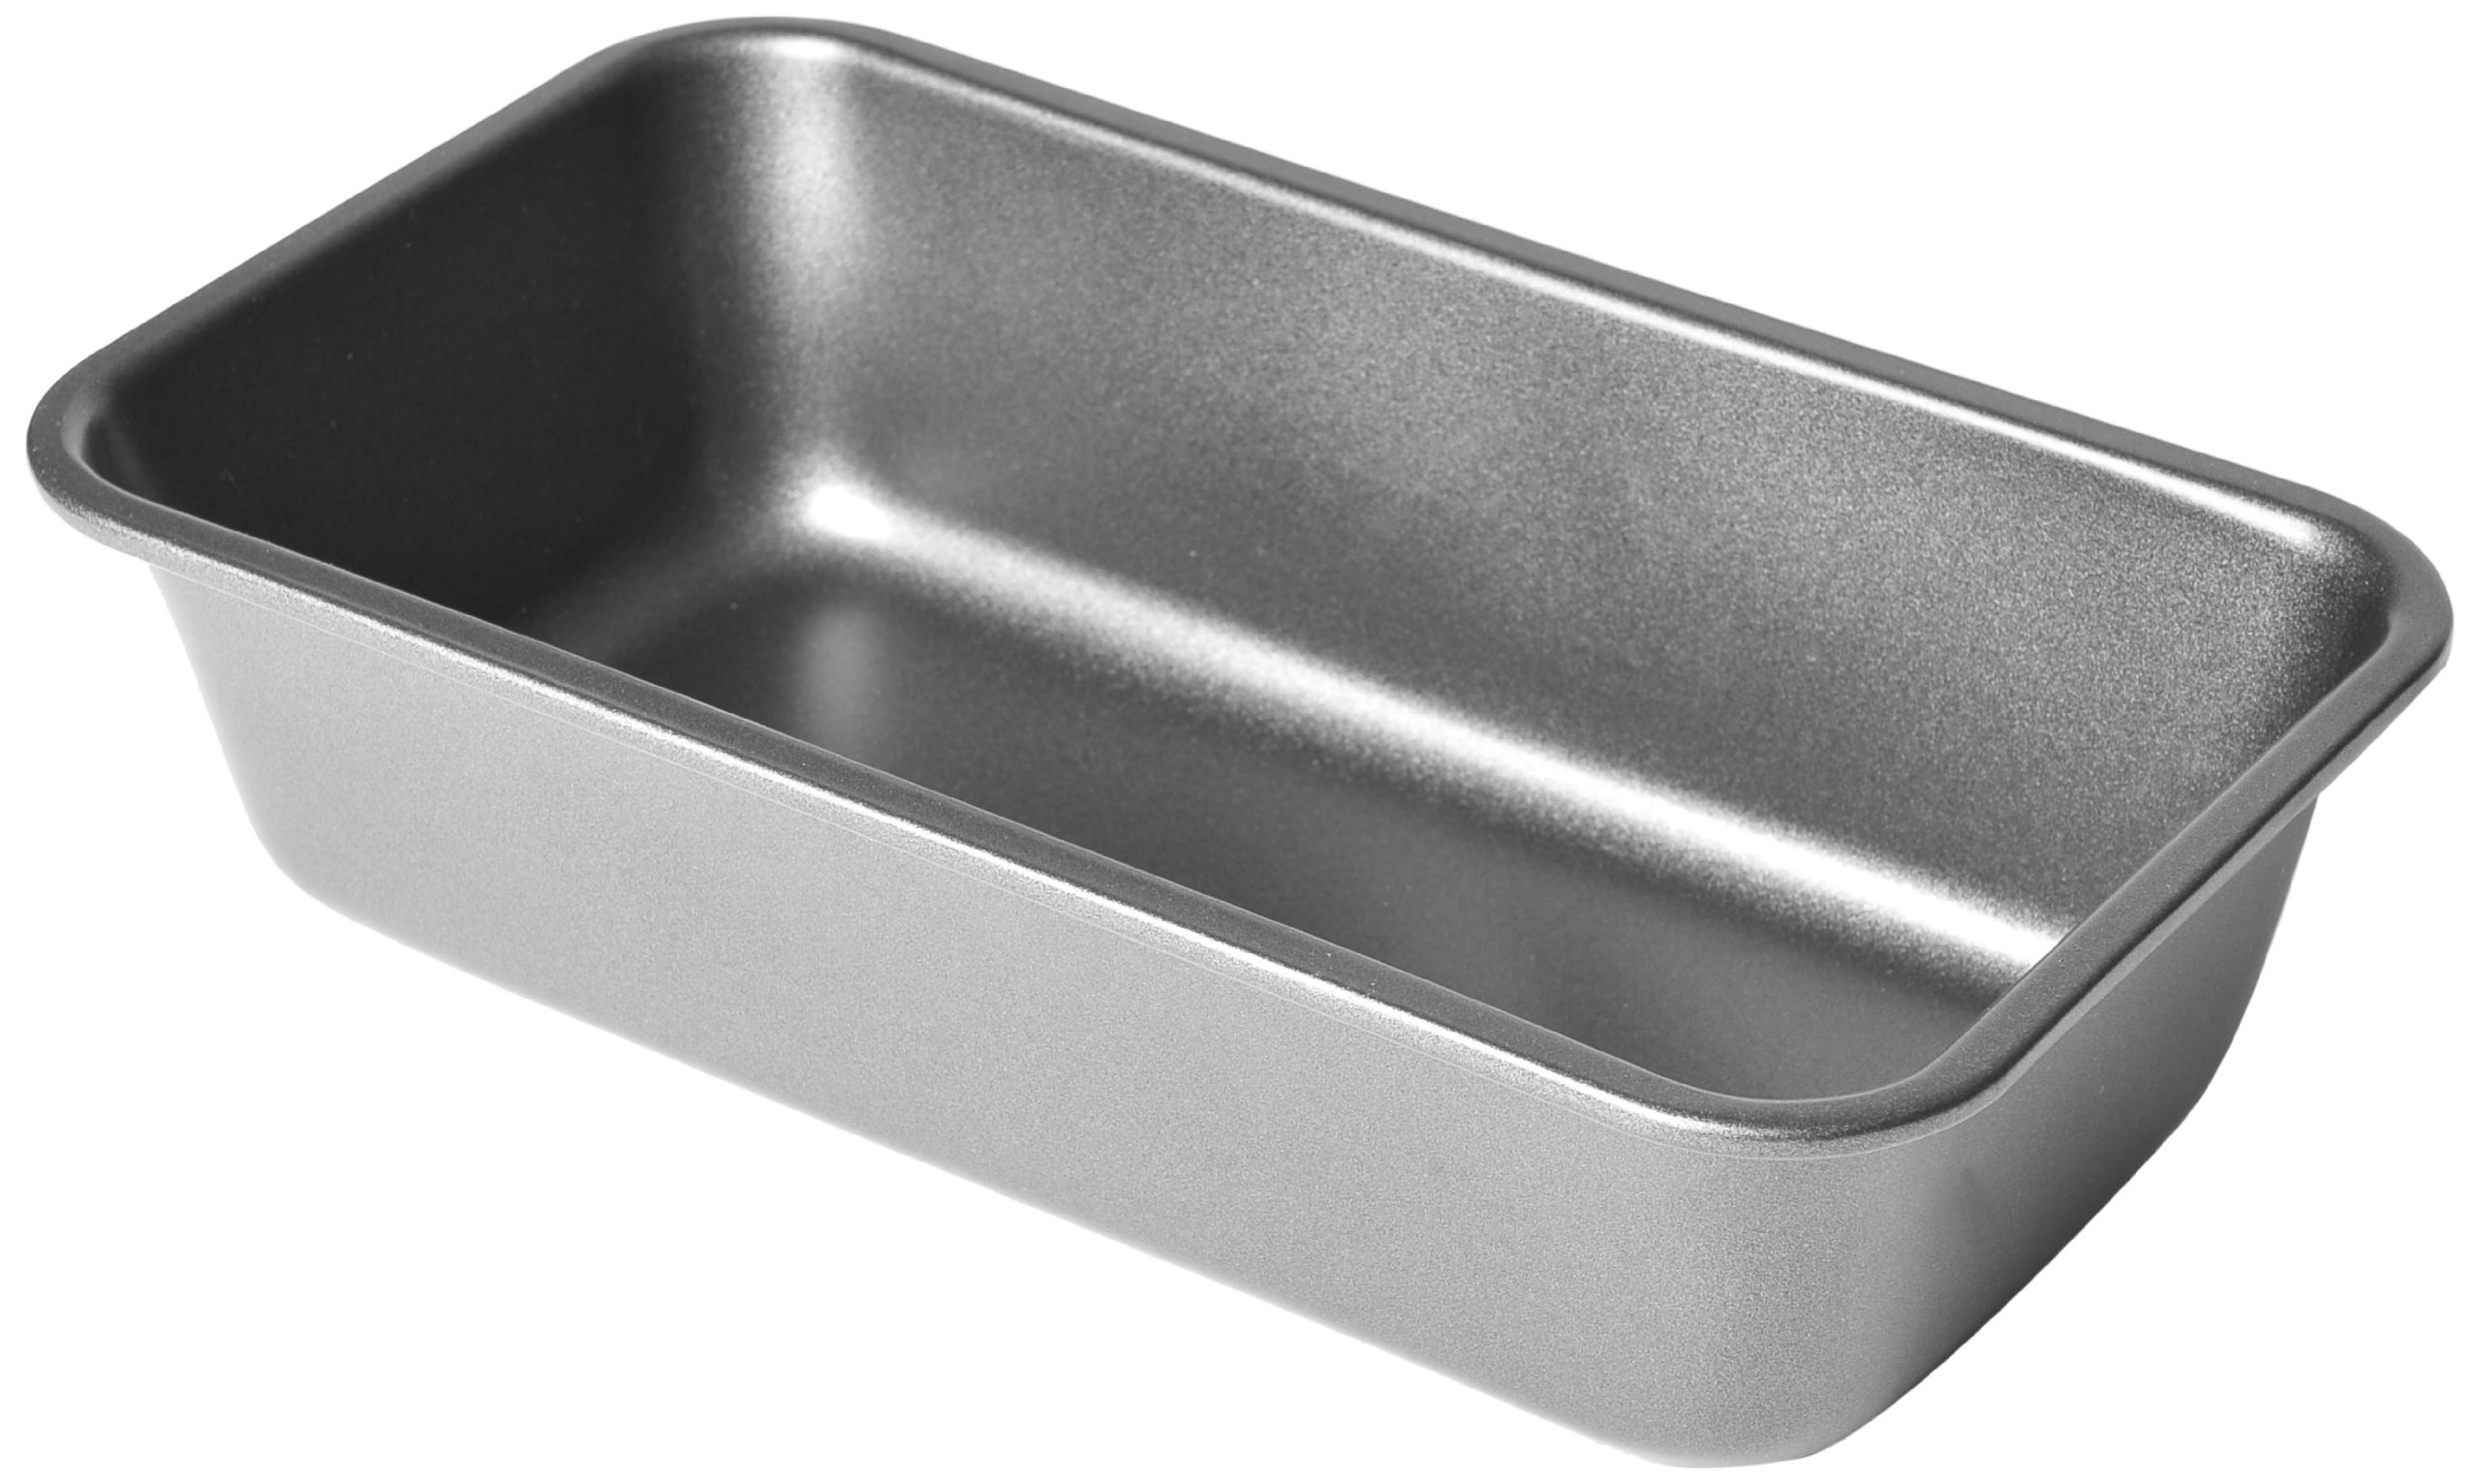 Chloe's Kitchen 201-106 Loaf Pan, 5-Inch by 9-Inch, Non-Stick